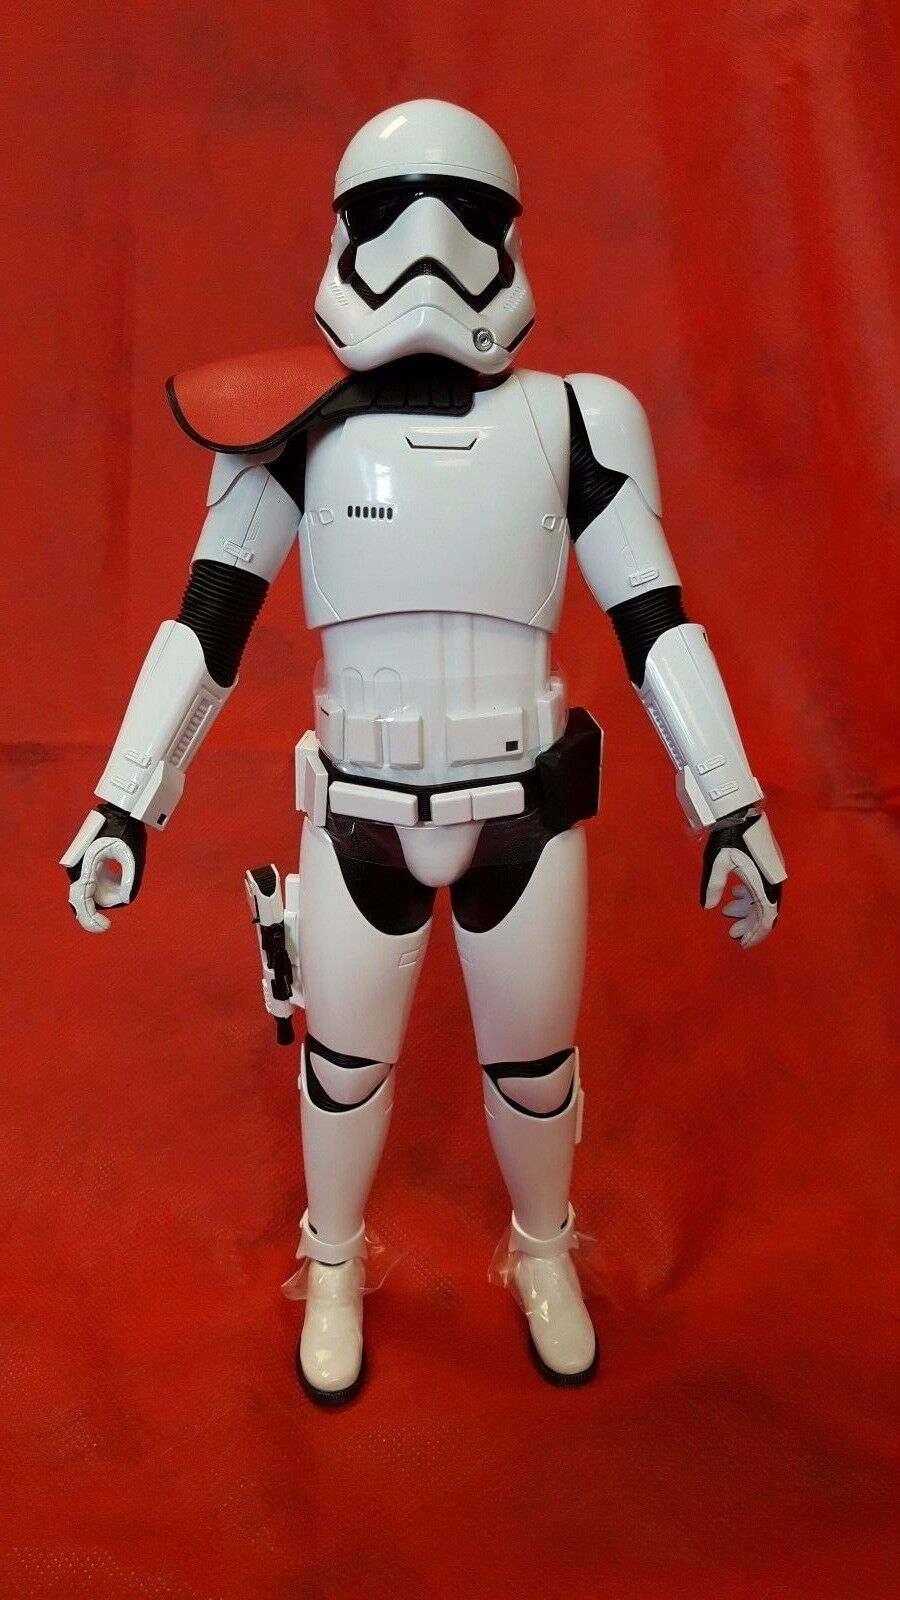 1 6 Hot Toys Star Wars First Order Stormtrooper Officer Figure from Set Loose